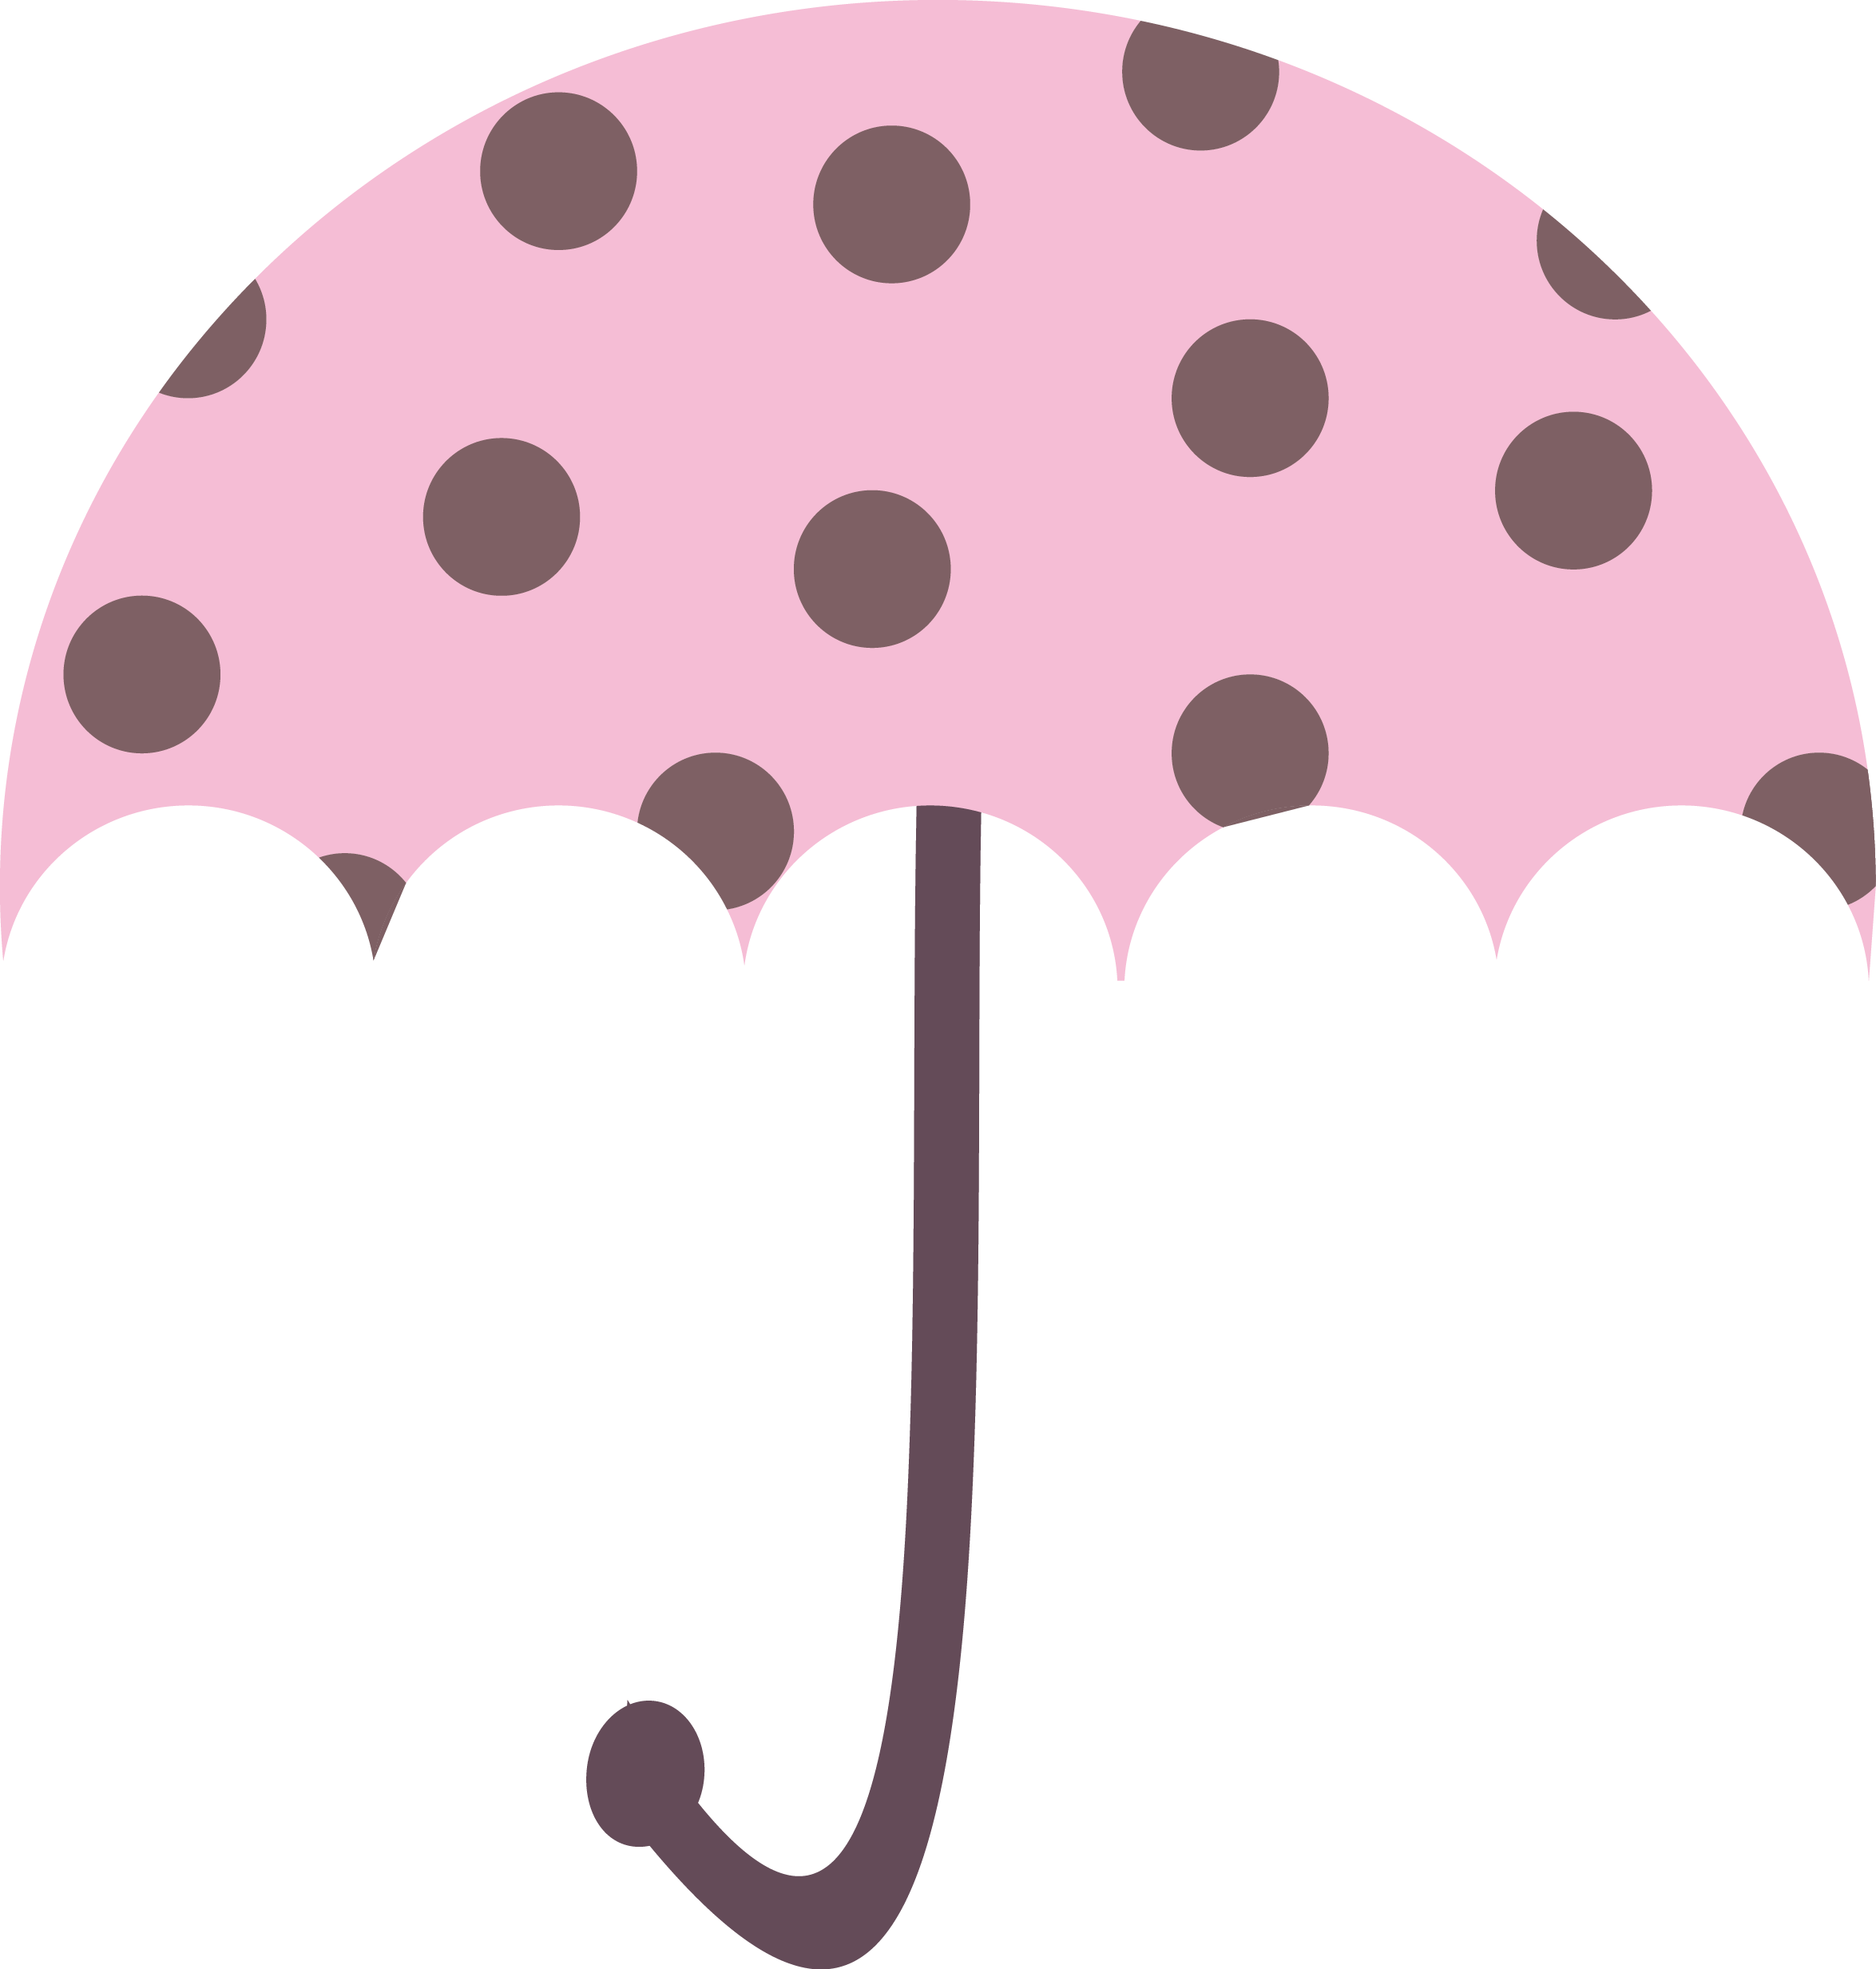 Acclaim Images - umbrella posters  umbrella art prints